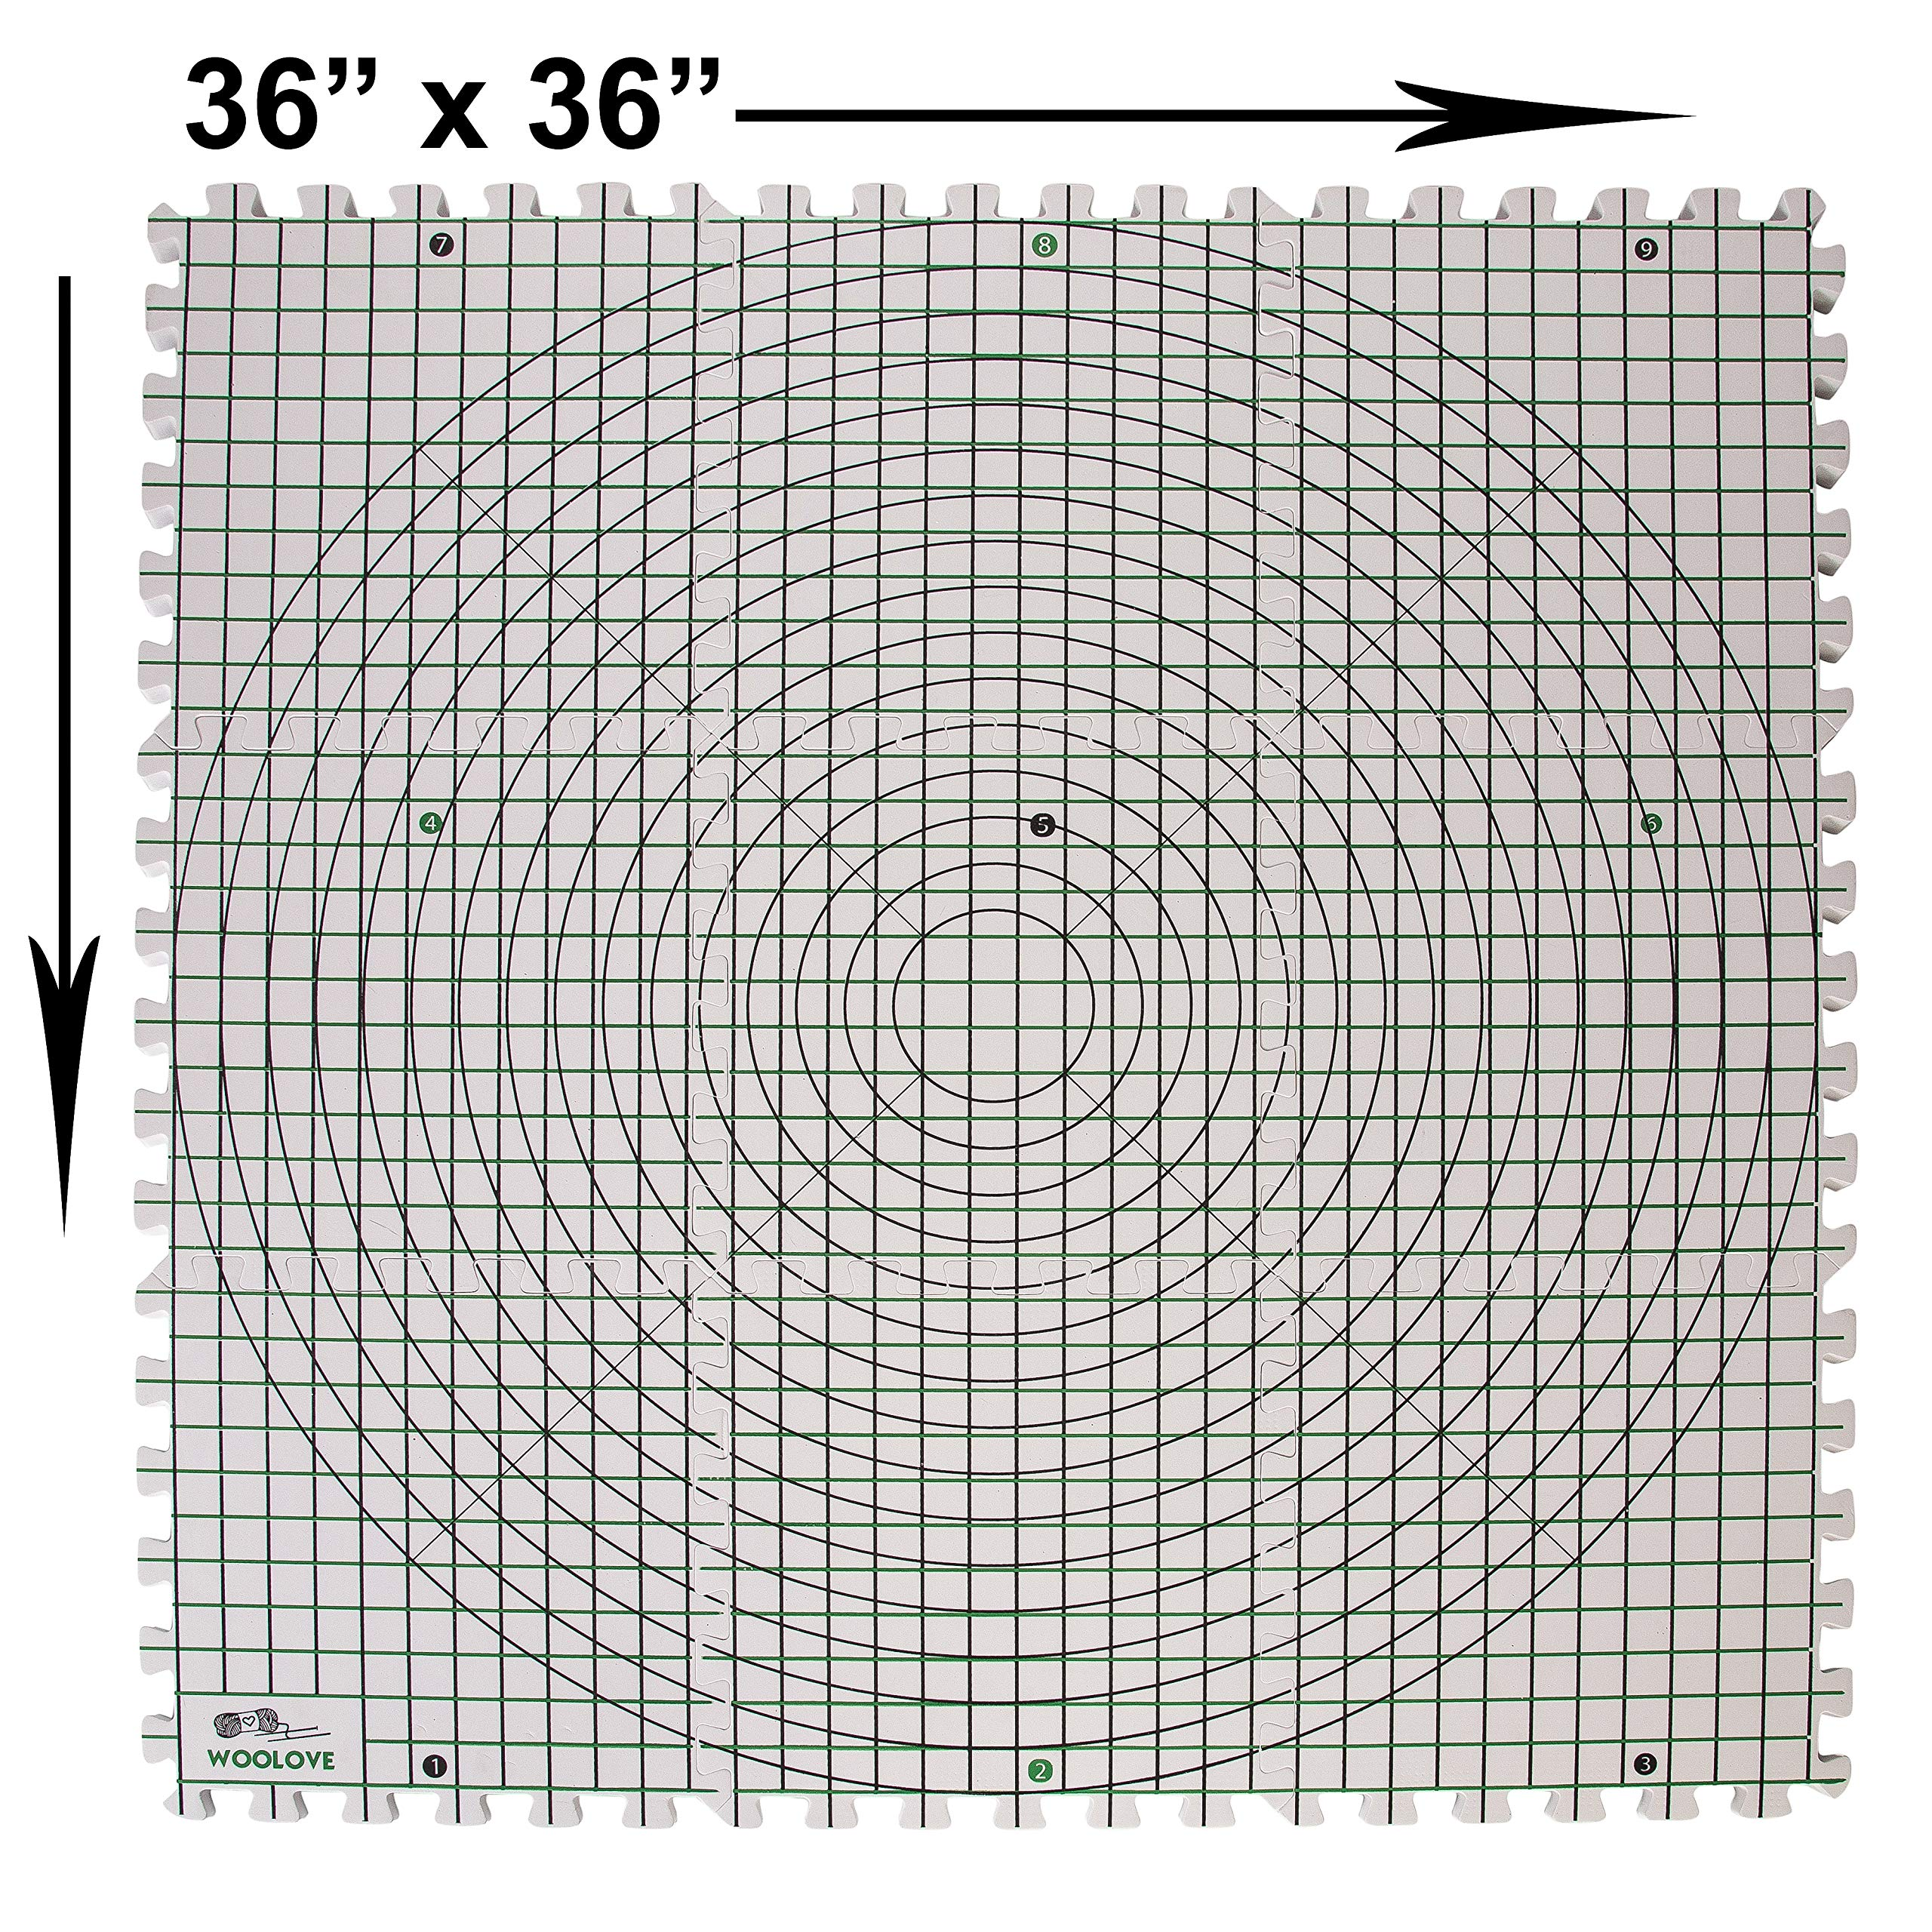 Extra Thick Blocking Mats for Wet and Steam Blocking with Grids and Radial Circles - Set of 9 Marked with Numbers Includes 100 t pins and Storage Bag by WOOLOVE (Image #7)